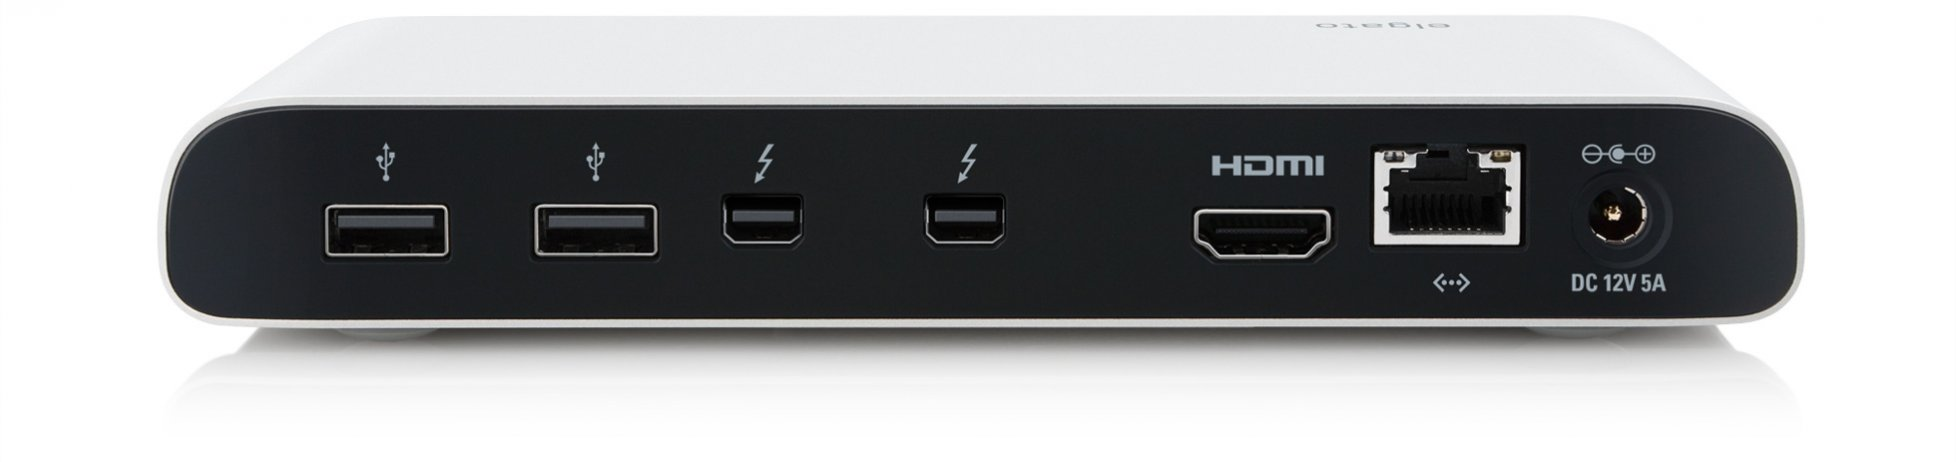 thunderbolt-dock-device-back_1